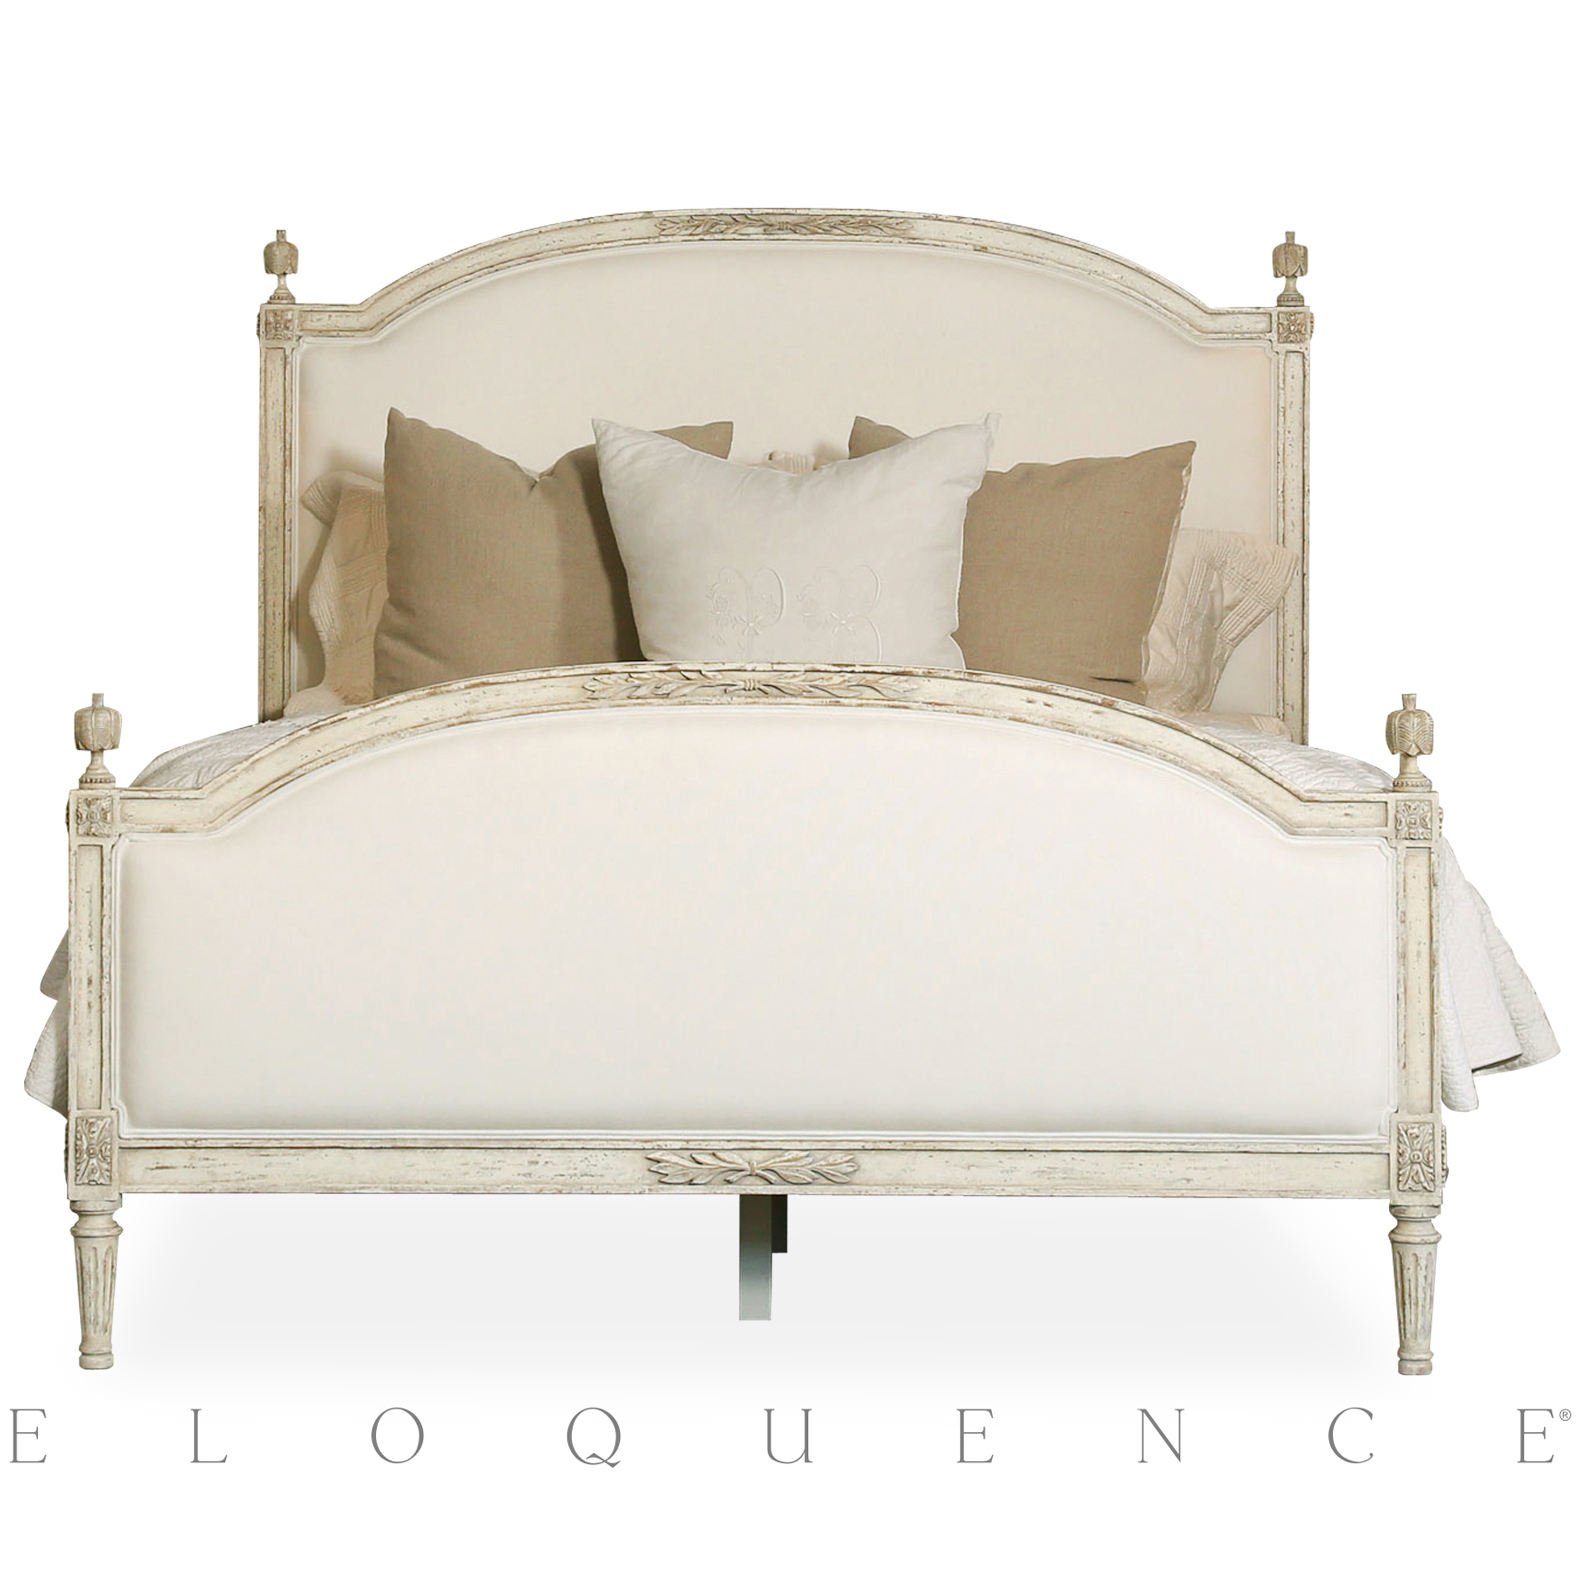 Eloquence® Dauphine King Bed in Weathered White